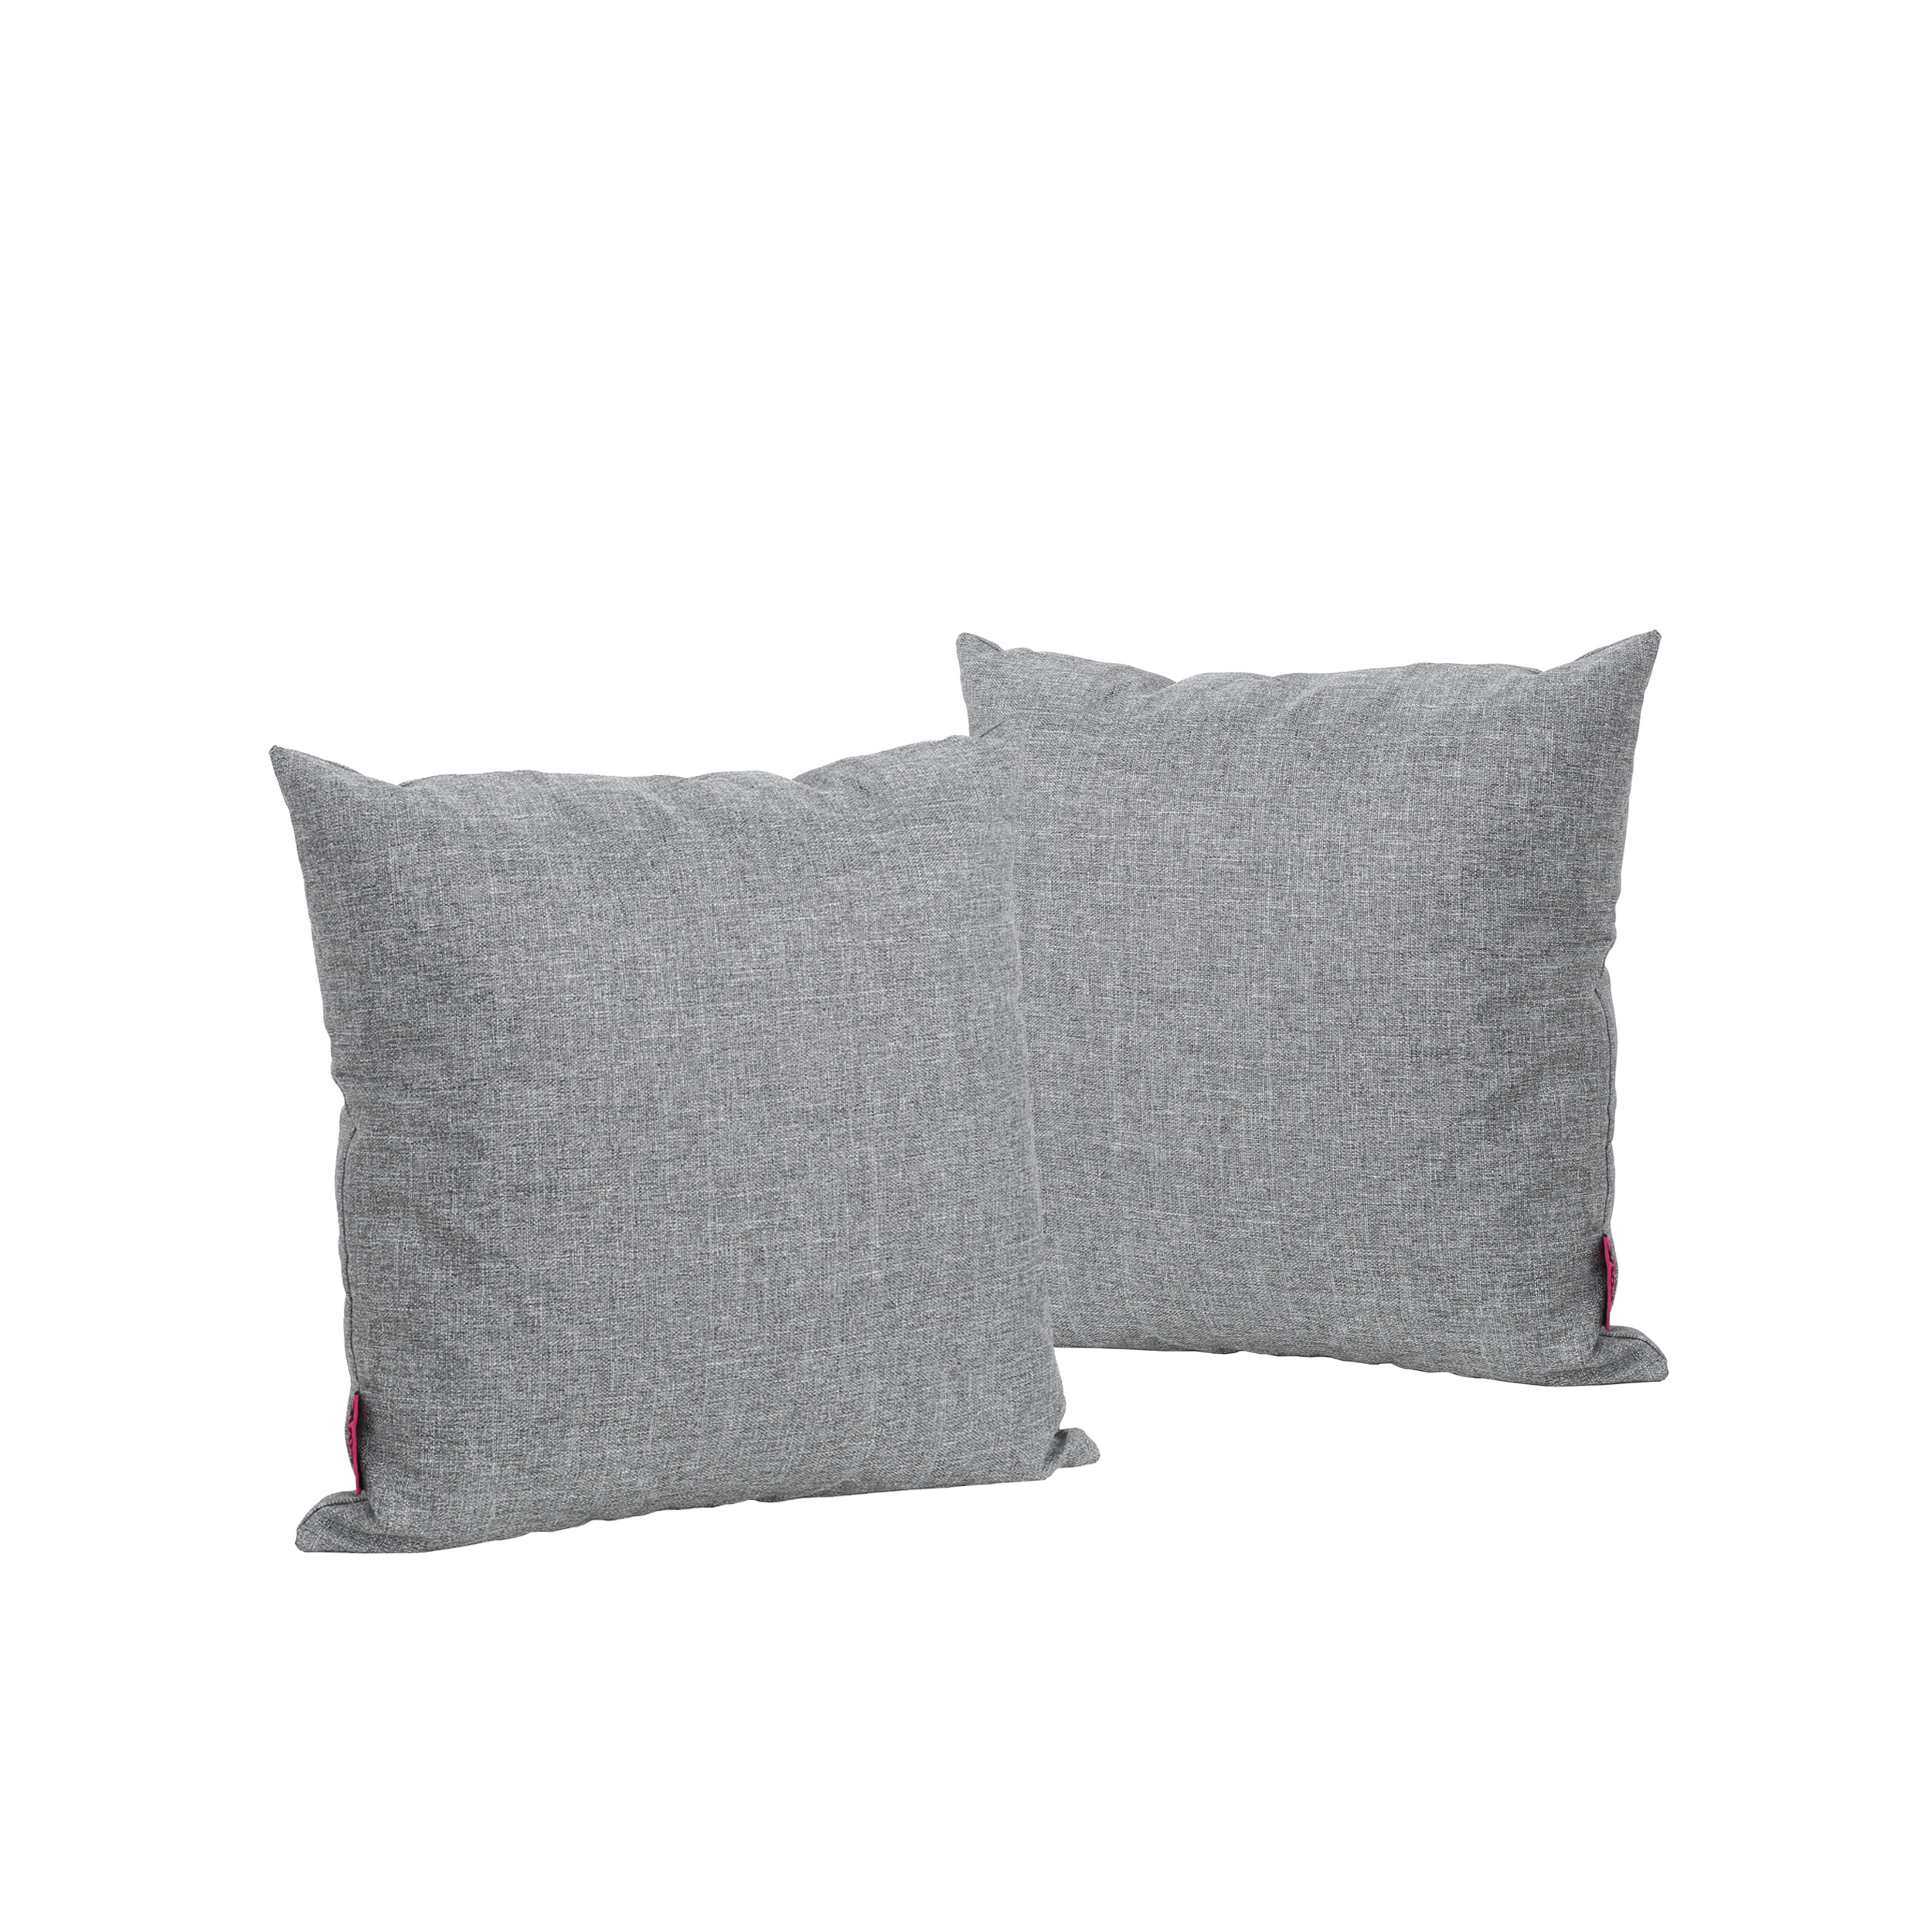 Kaffe Indoor Water Resistant Square Throw Pillows, Set of 2, Grey by GDF Studio